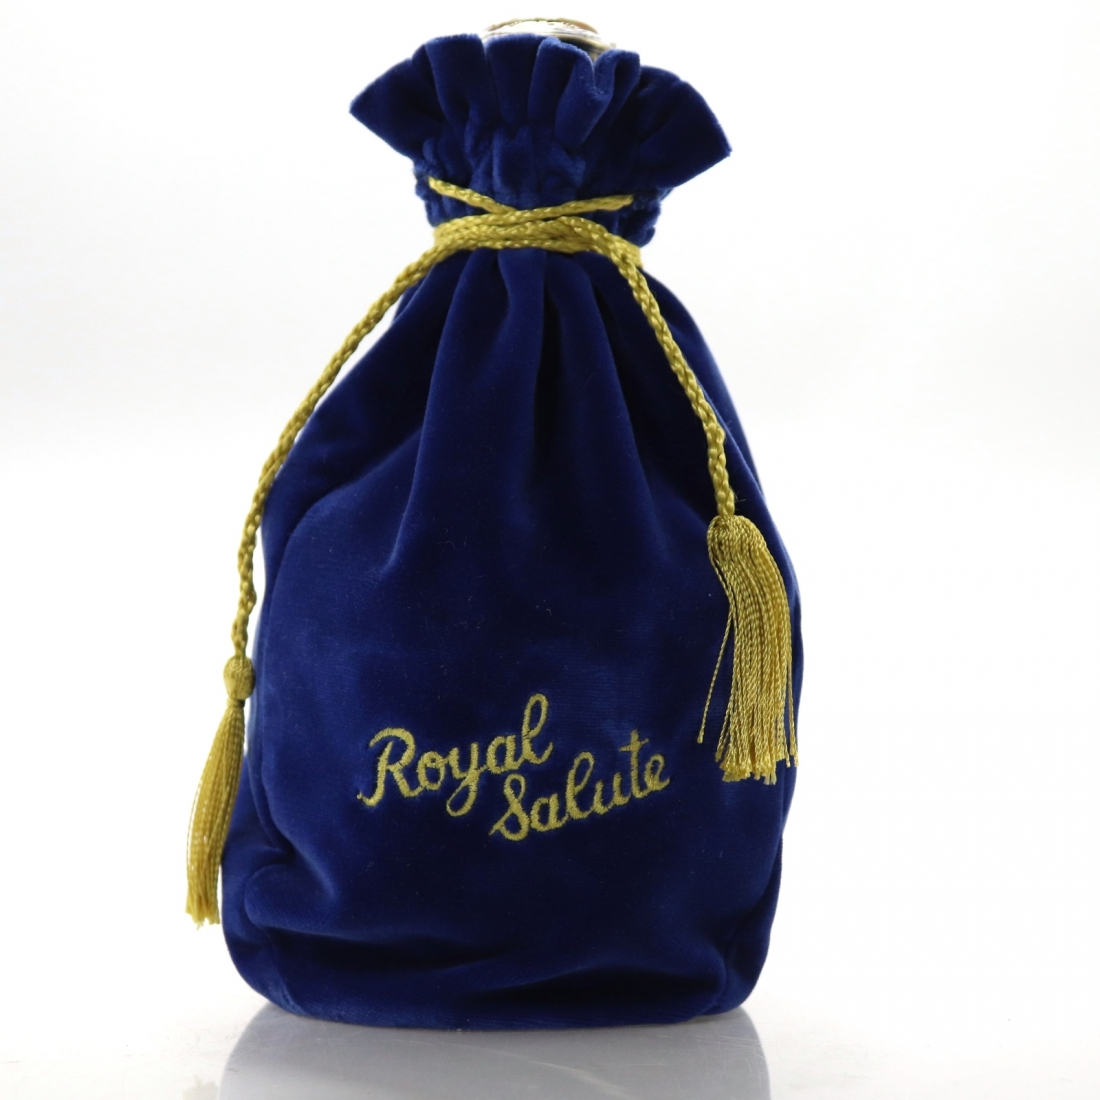 Chivas Regal Royal Salute 21 Year Old / Sapphire Flagon